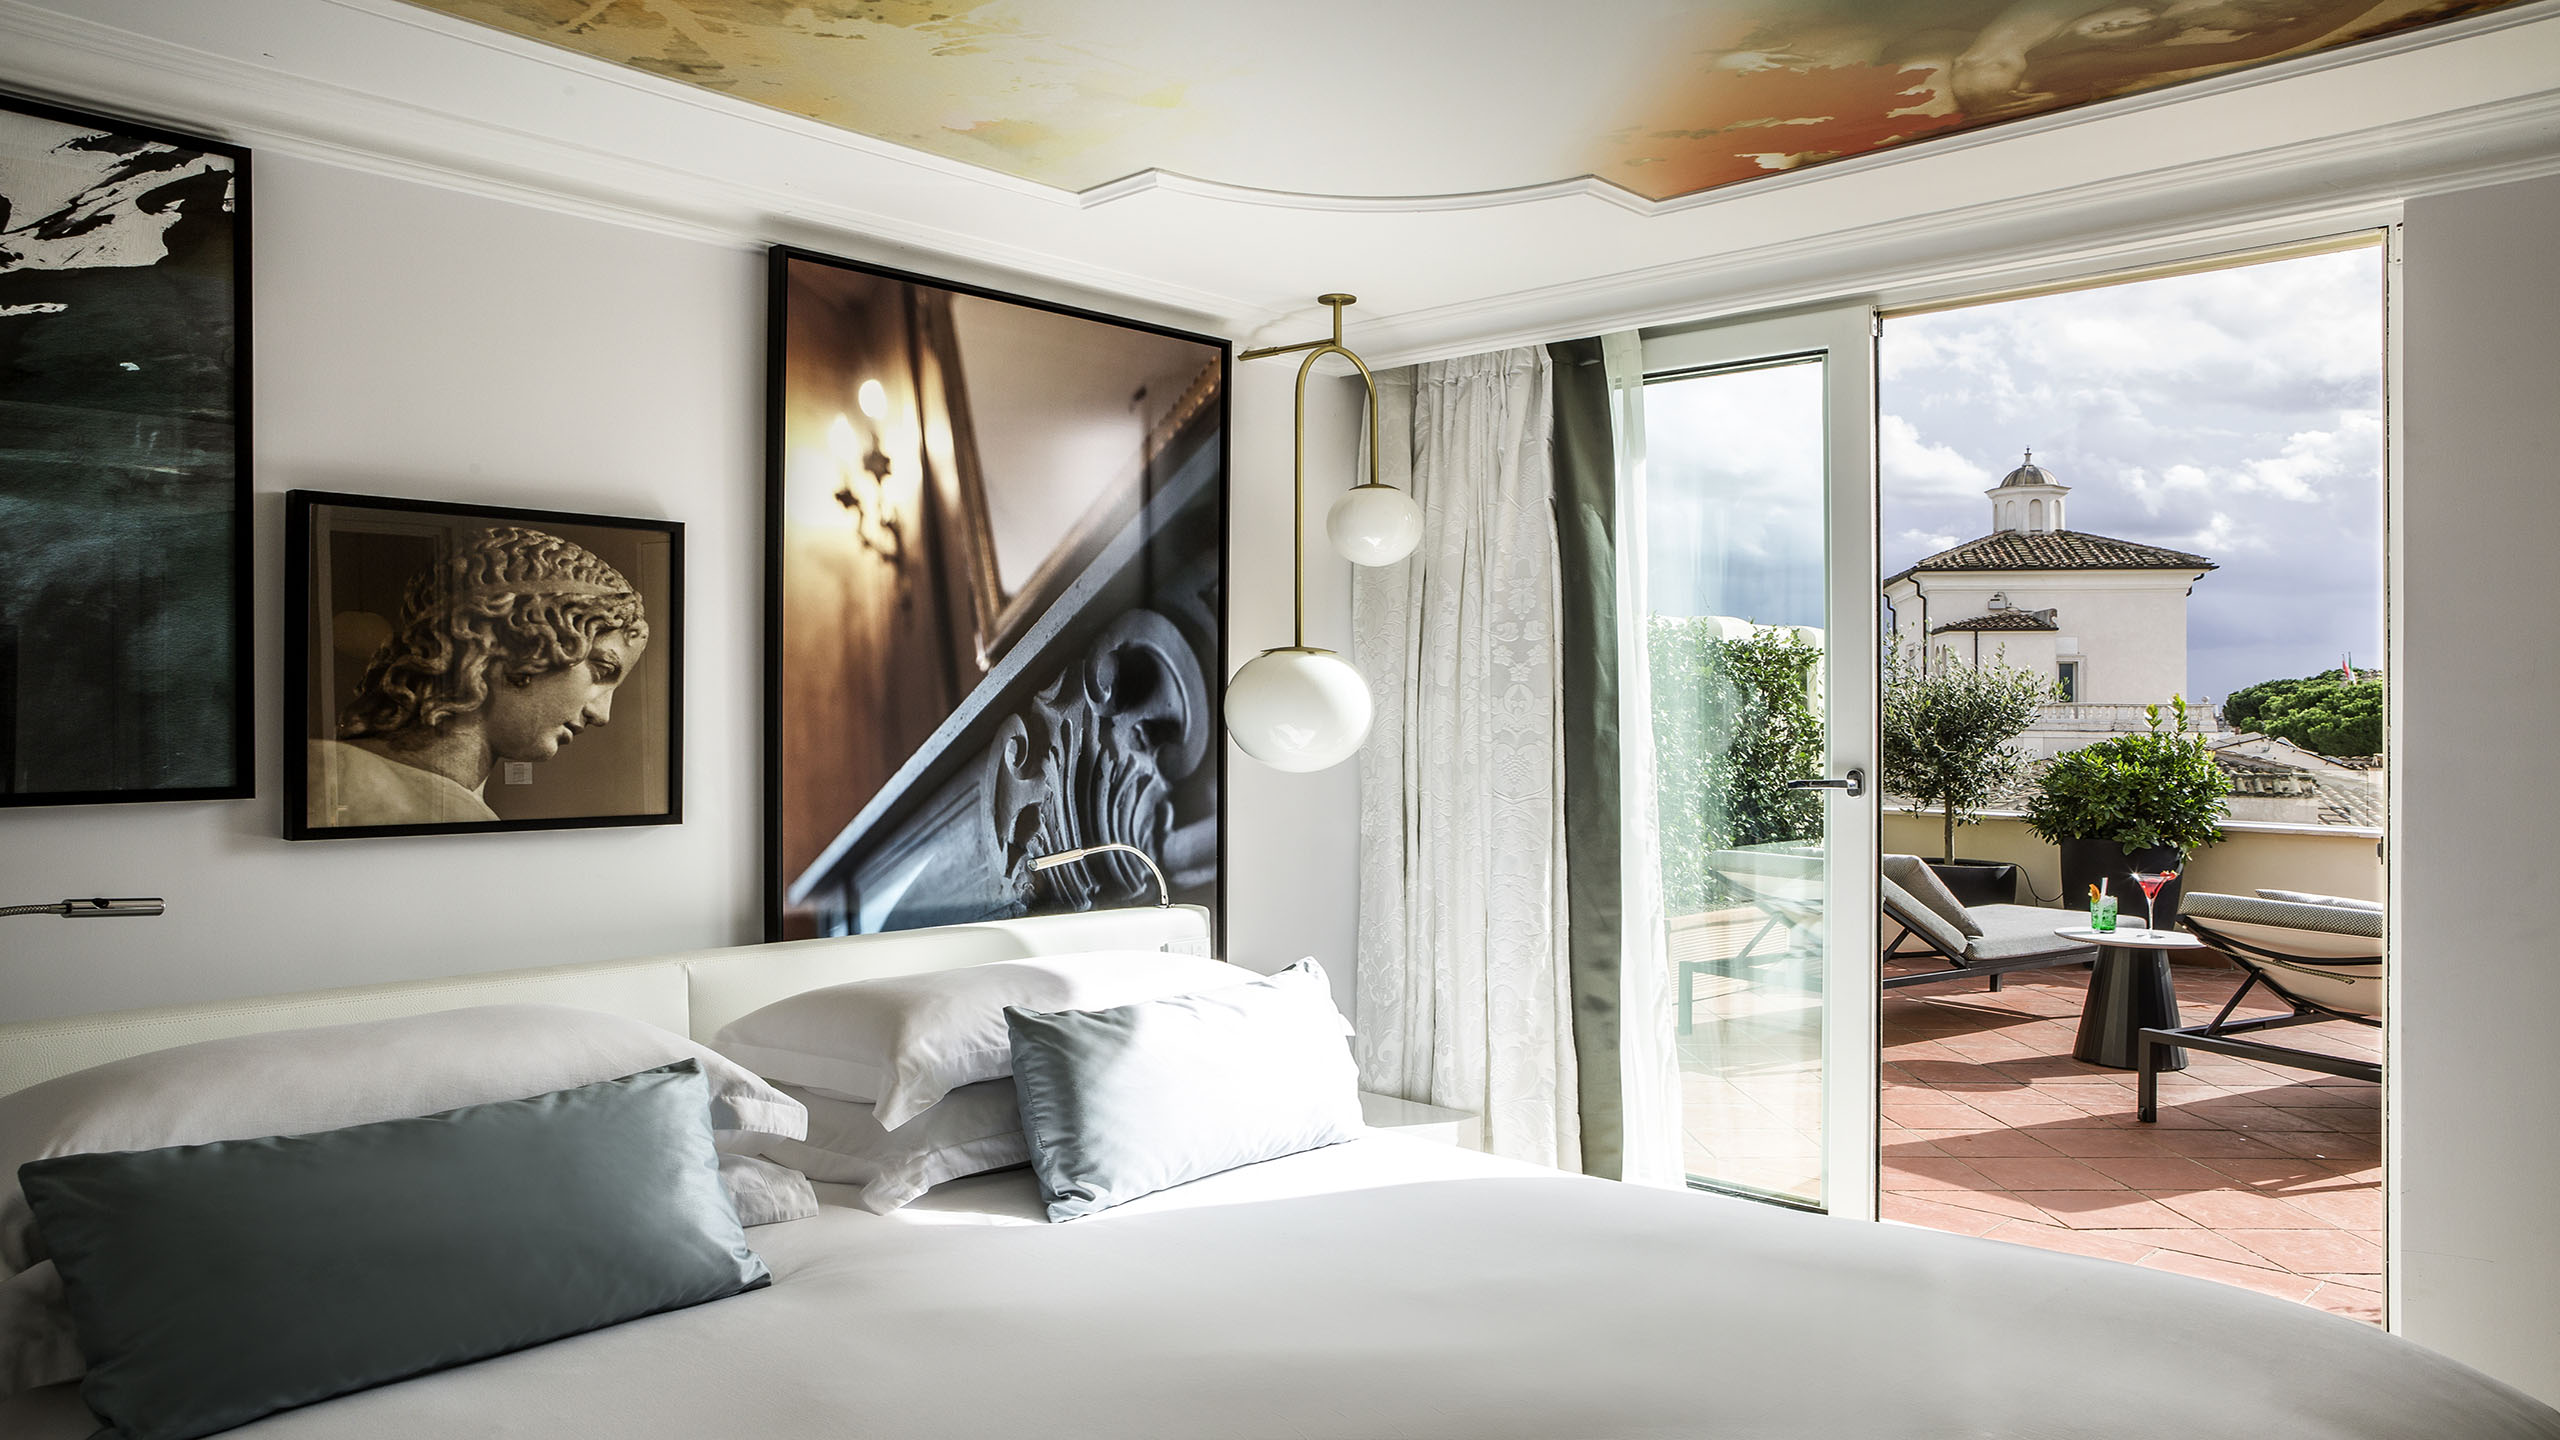 Luxury Hotel Rome Sofitel Roma Reopens On March 4 2019